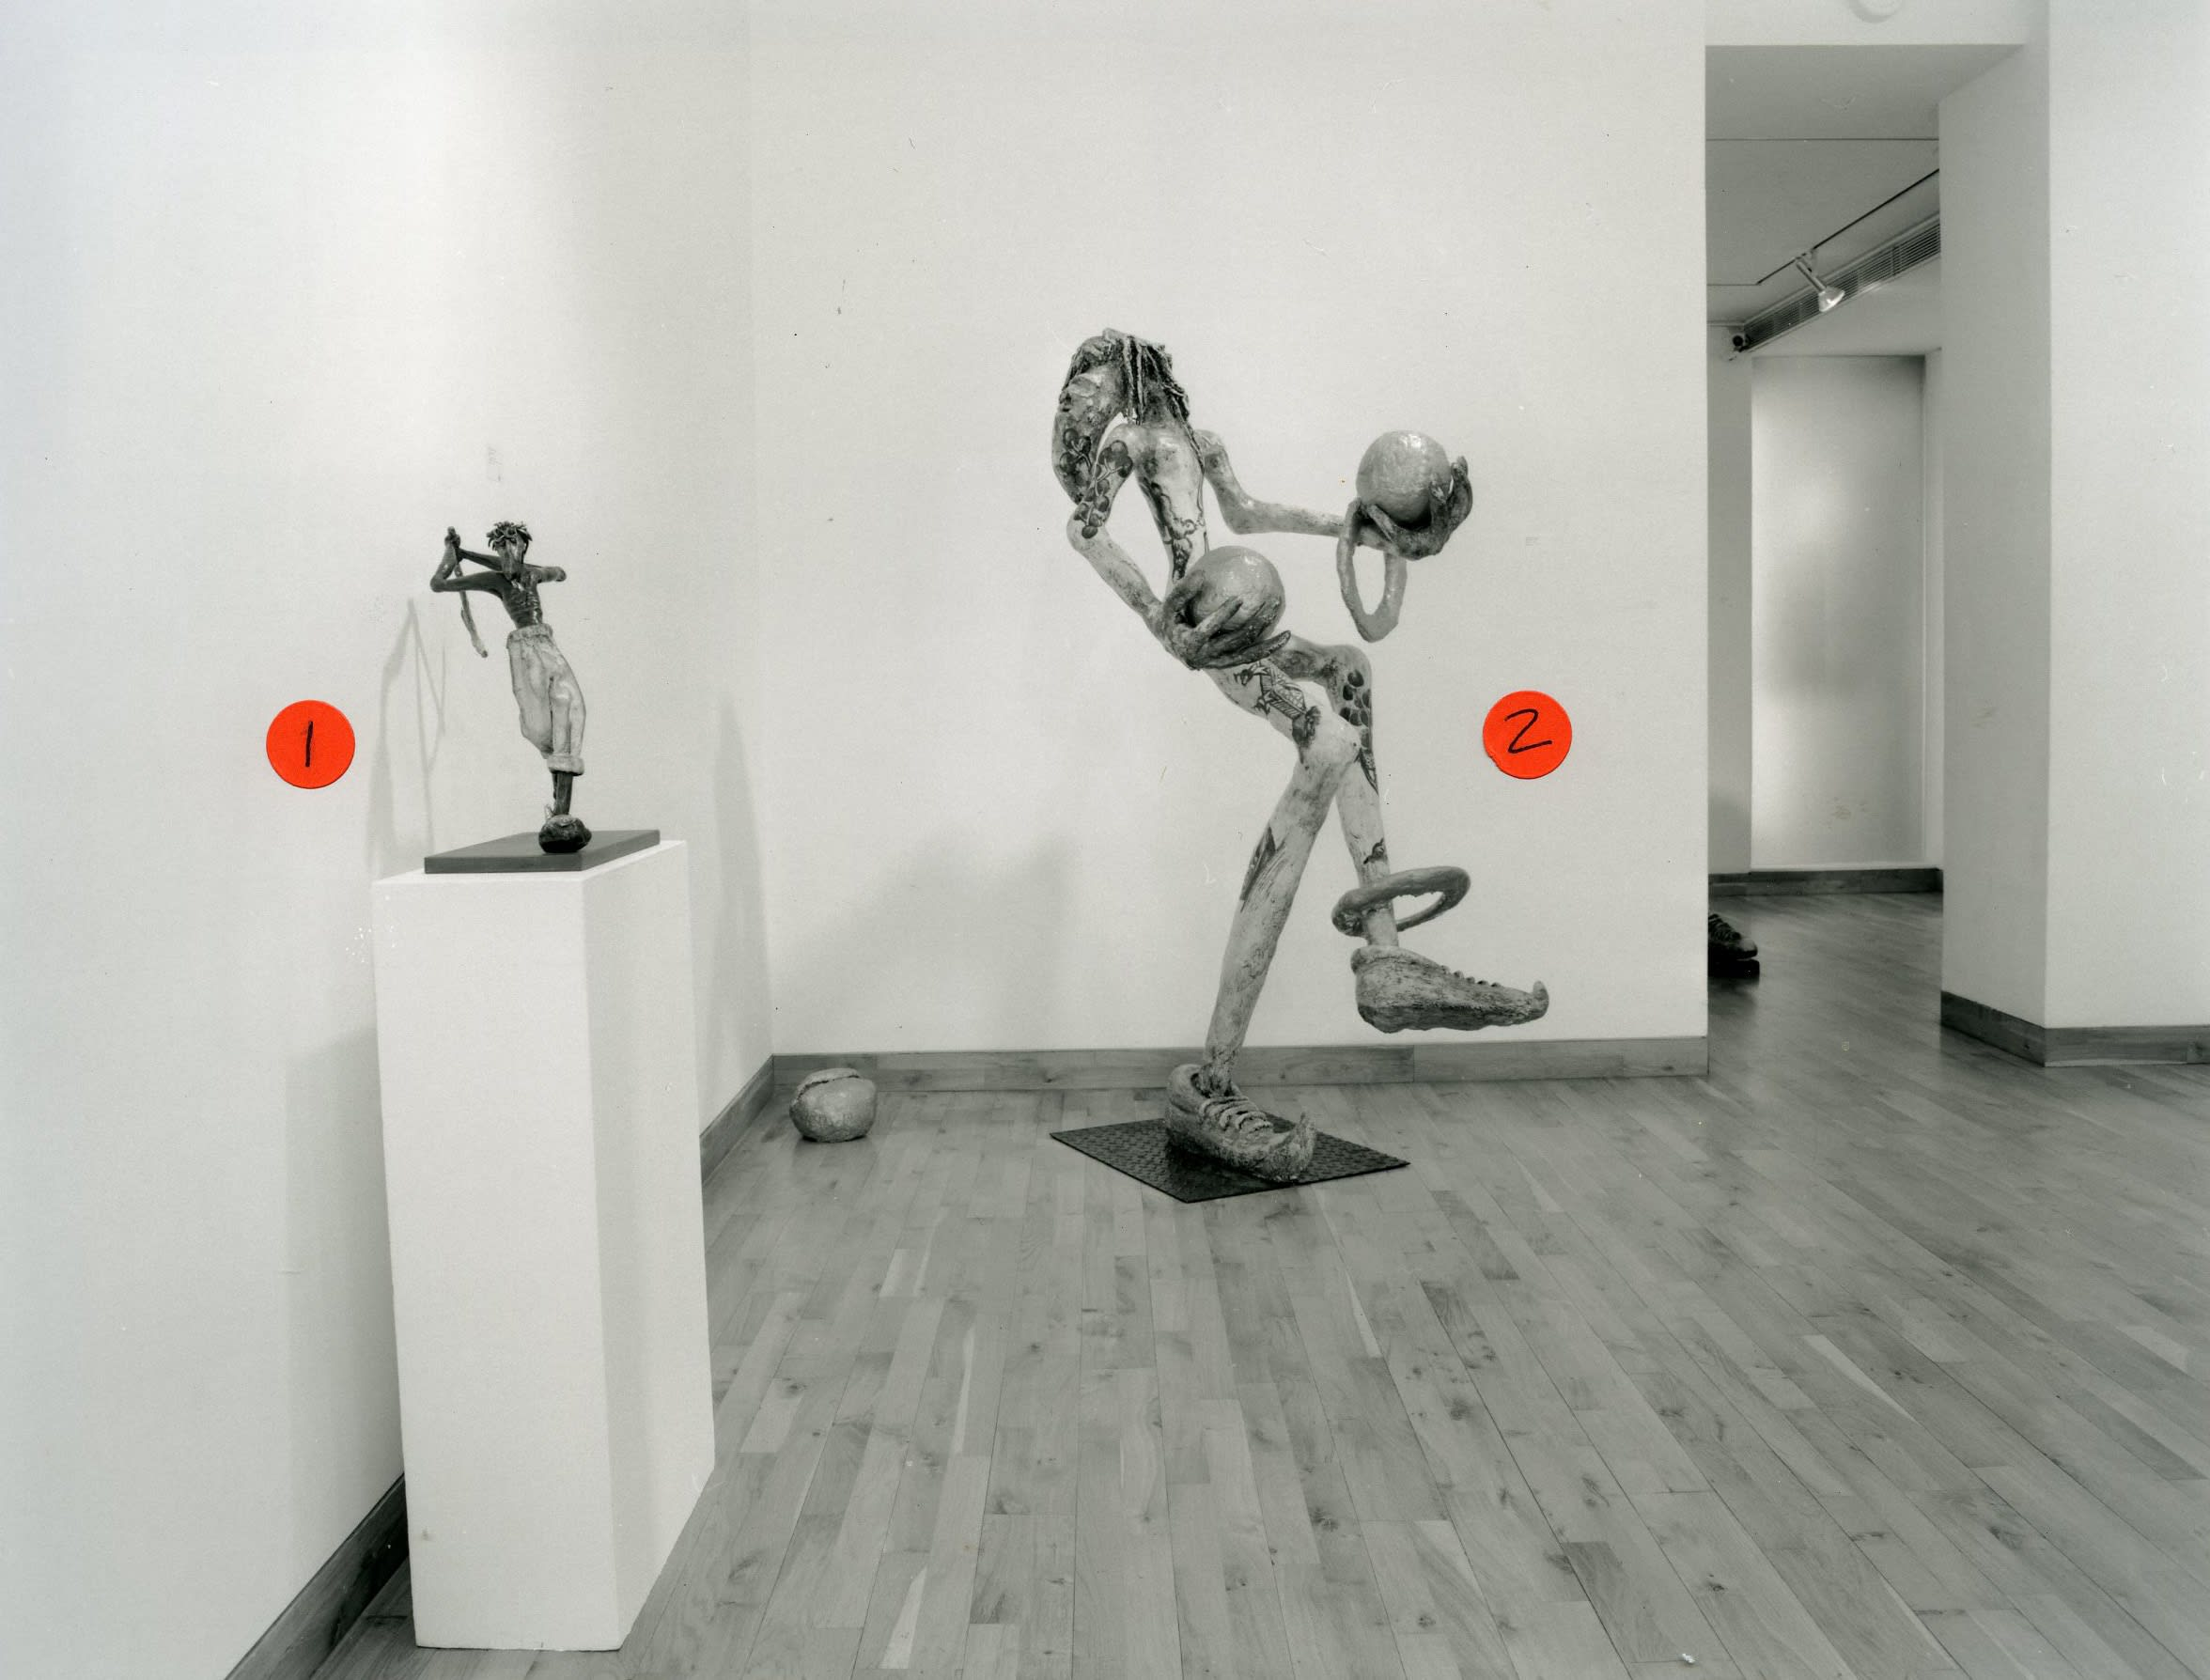 """<span class=""""link fancybox-details-link""""><a href=""""/exhibitions/162/works/image_standalone711/"""">View Detail Page</a></span><p>PATRICK O'REILLY   THE BROKEN WING   25 FEB - 01 APR 1999   Installation View</p>"""